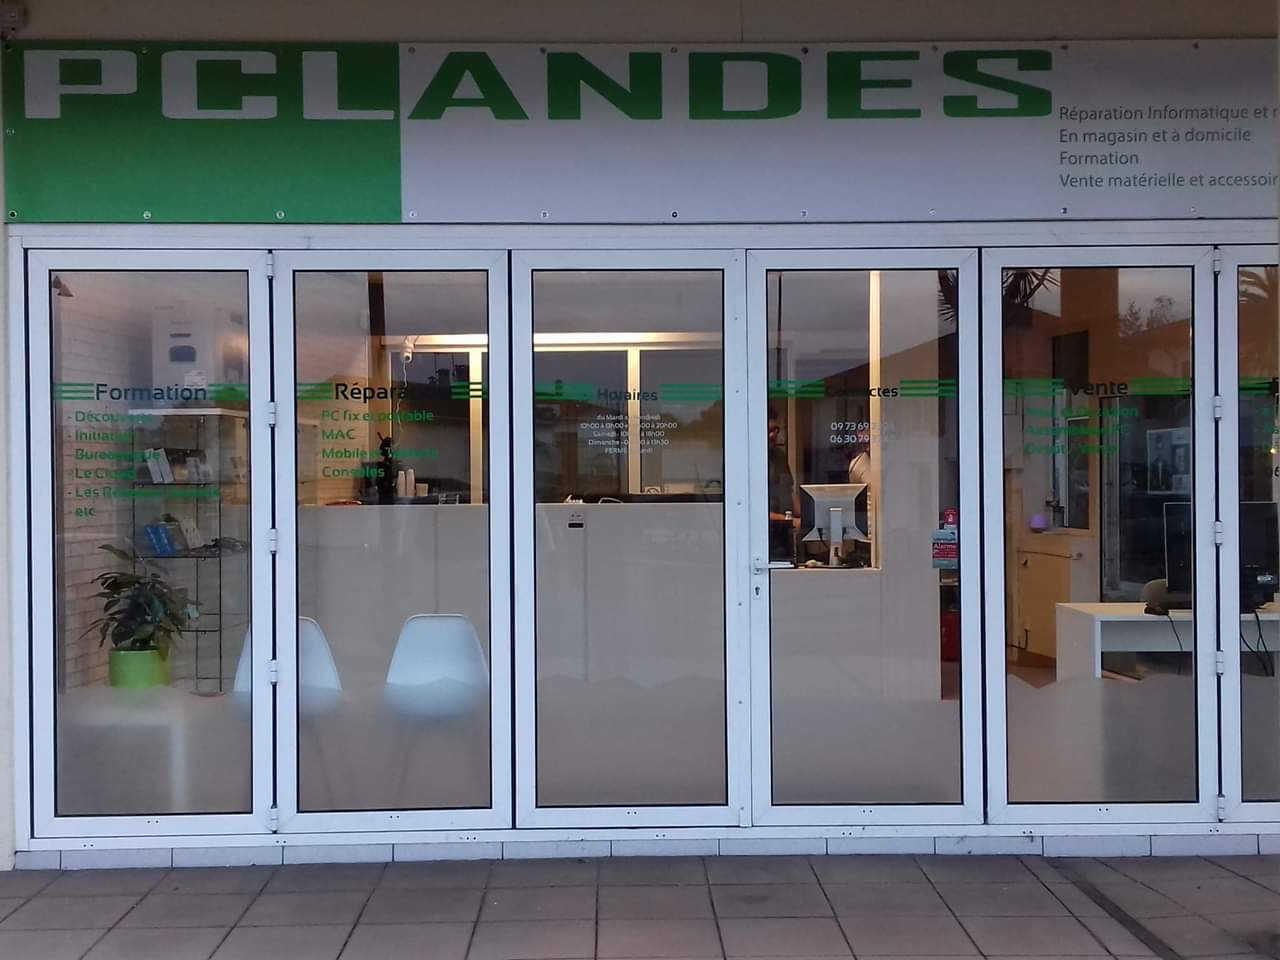 photo de la boutique de Pc landes